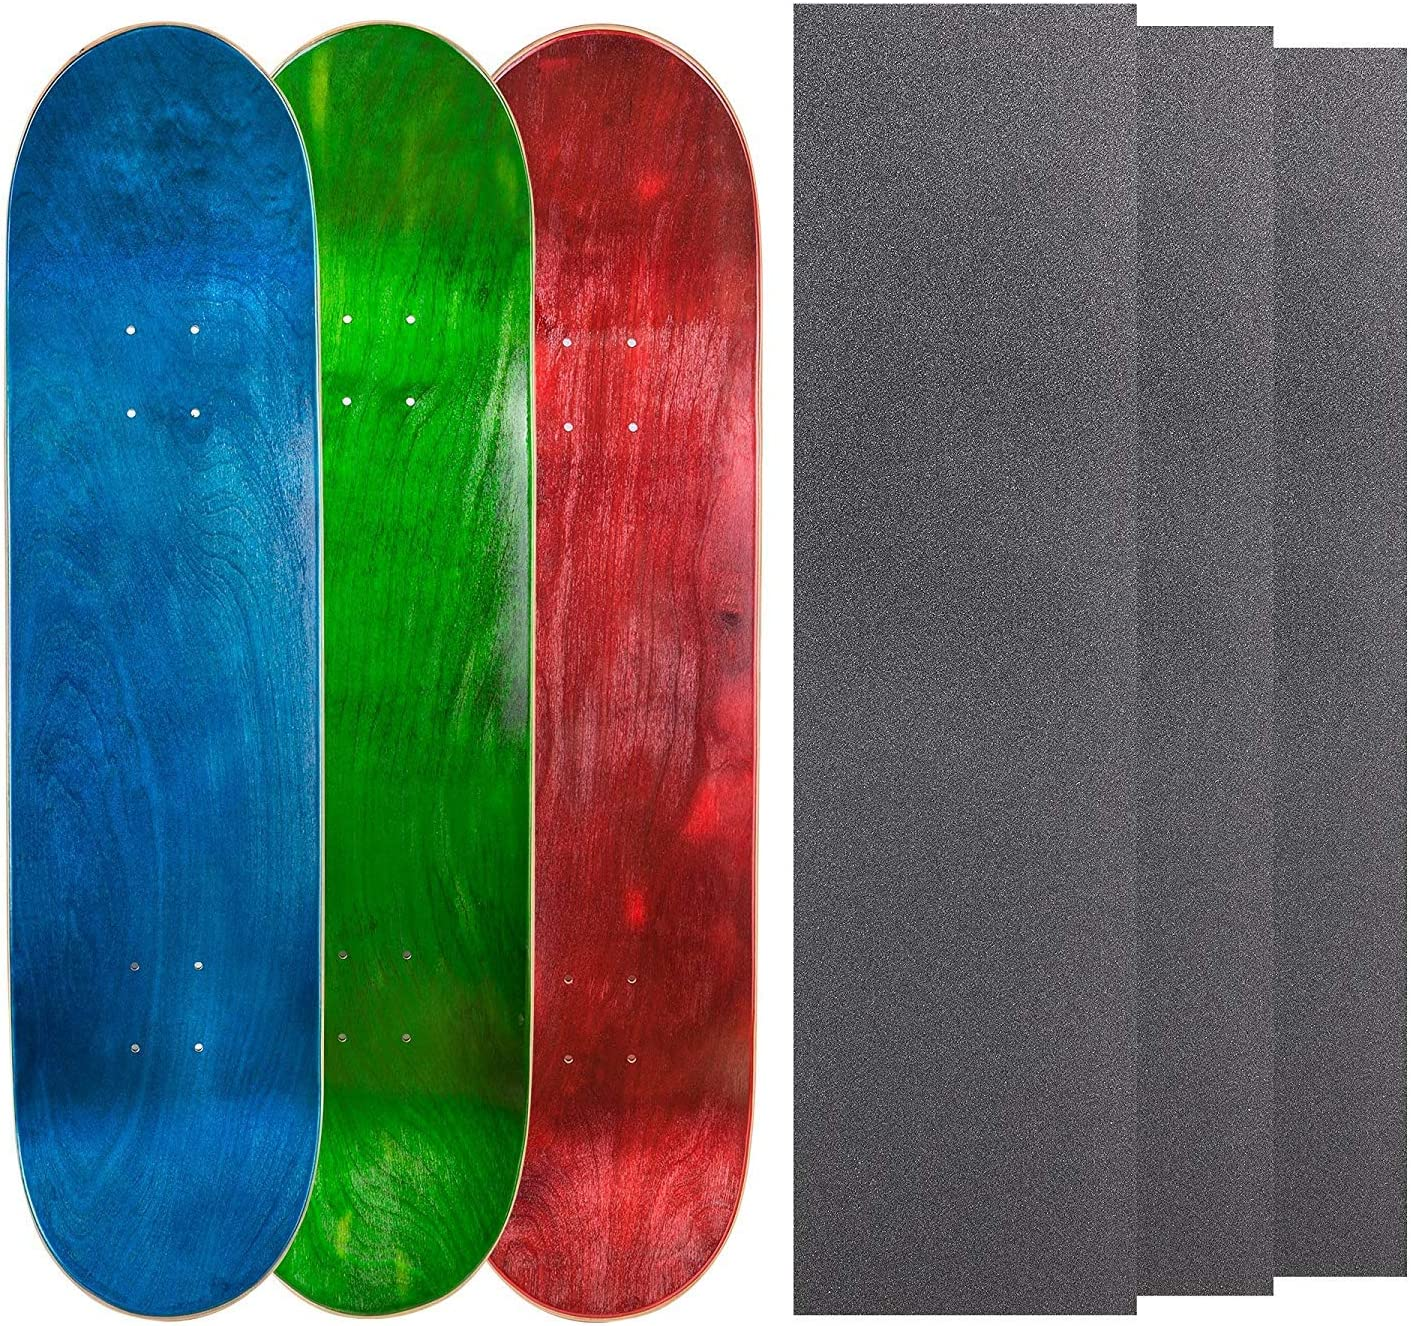 Cal 7 Blank Skateboard Decks Set of 3